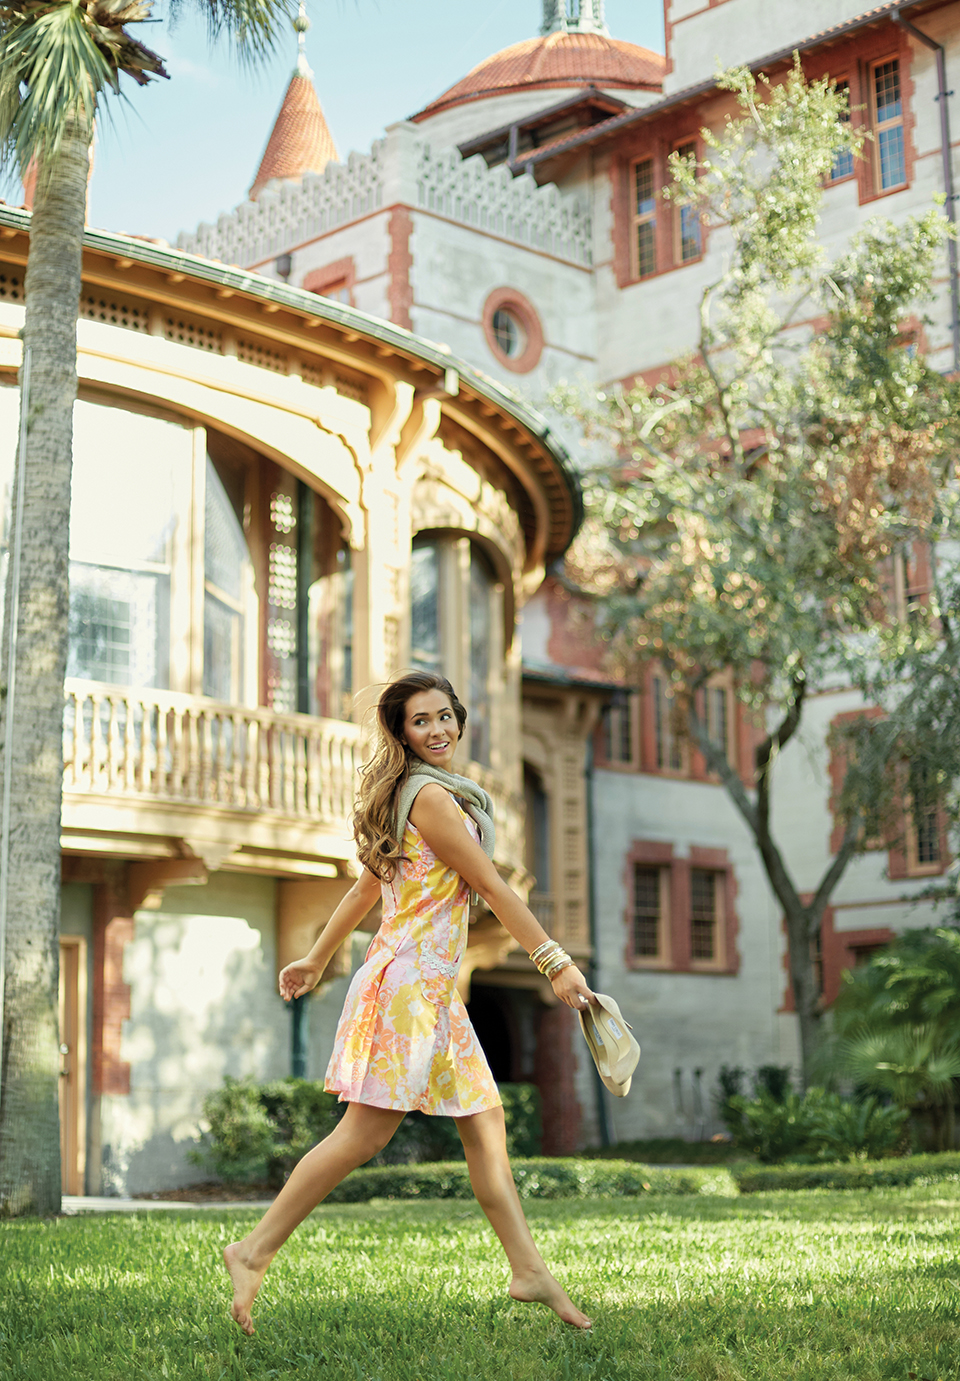 Eve wears a orange, pink and yellow floral Lilly dress with a sweater tied around her shoulders. She holds tan pumps as she struts across the grass with Flagler College's historic architecture in the background.